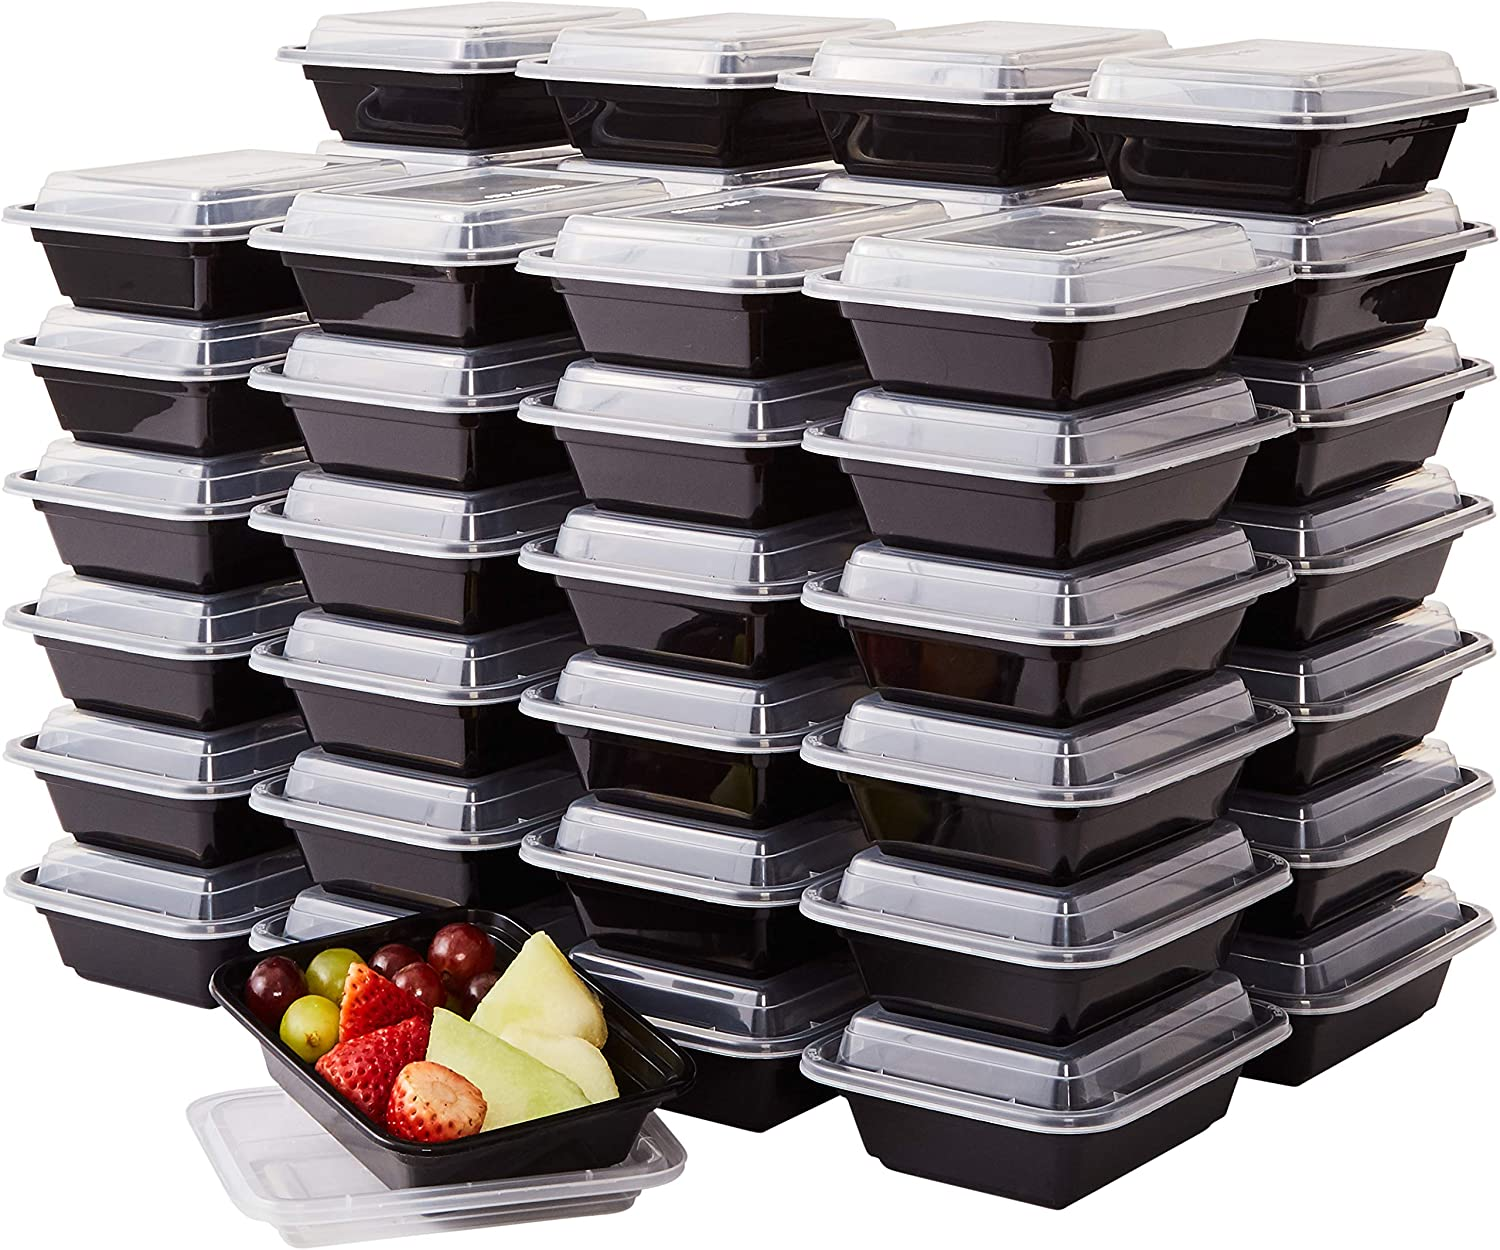 Pro Grade, BPA Free Plastic Containers with Lids, 50ct. 12oz, Leakproof, Microwavable Portion Container for To-Go Orders, Food Prep and Storage. Reusable Bento Boxes for Restaurant, Cafe and Catering